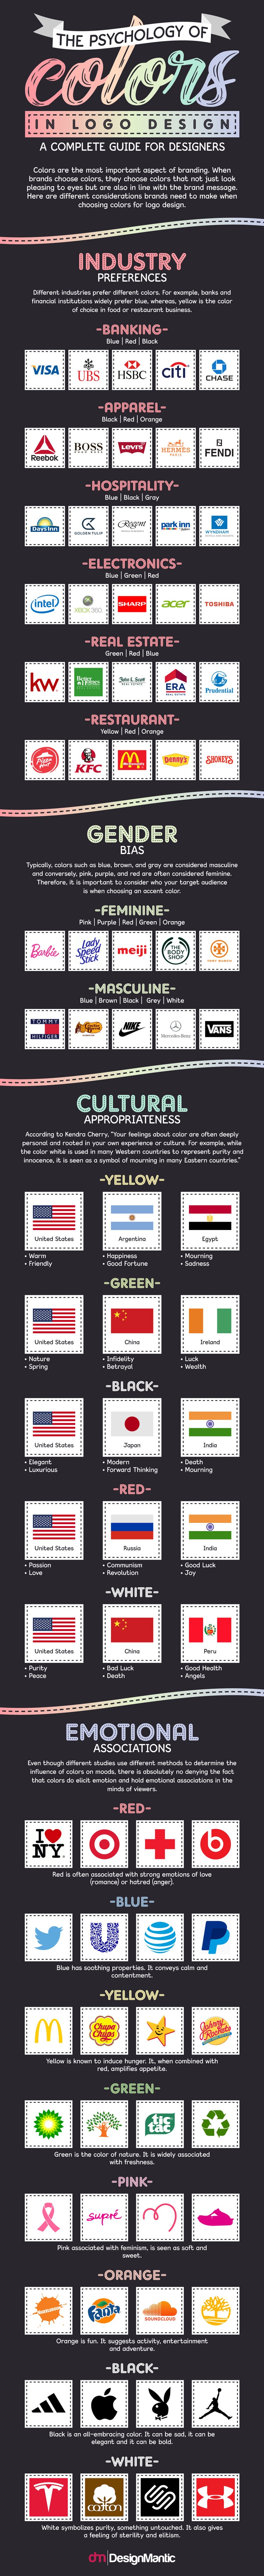 The Psychology Of Colors